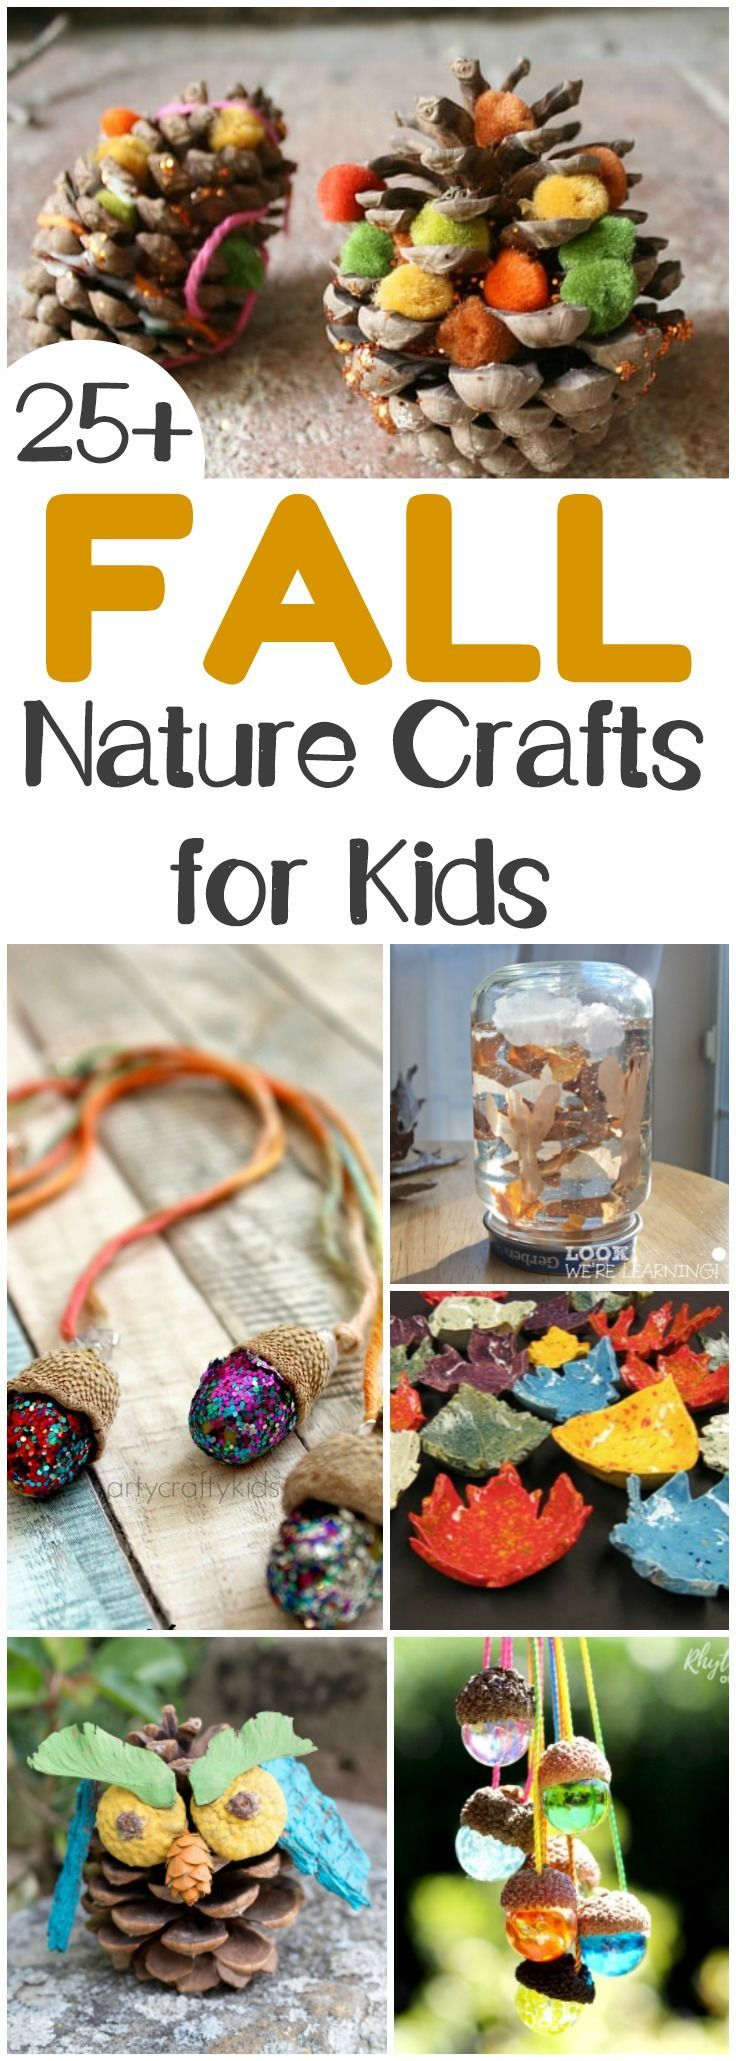 Fall Nature Crafts for Kids to Make This Autumn #fallnature